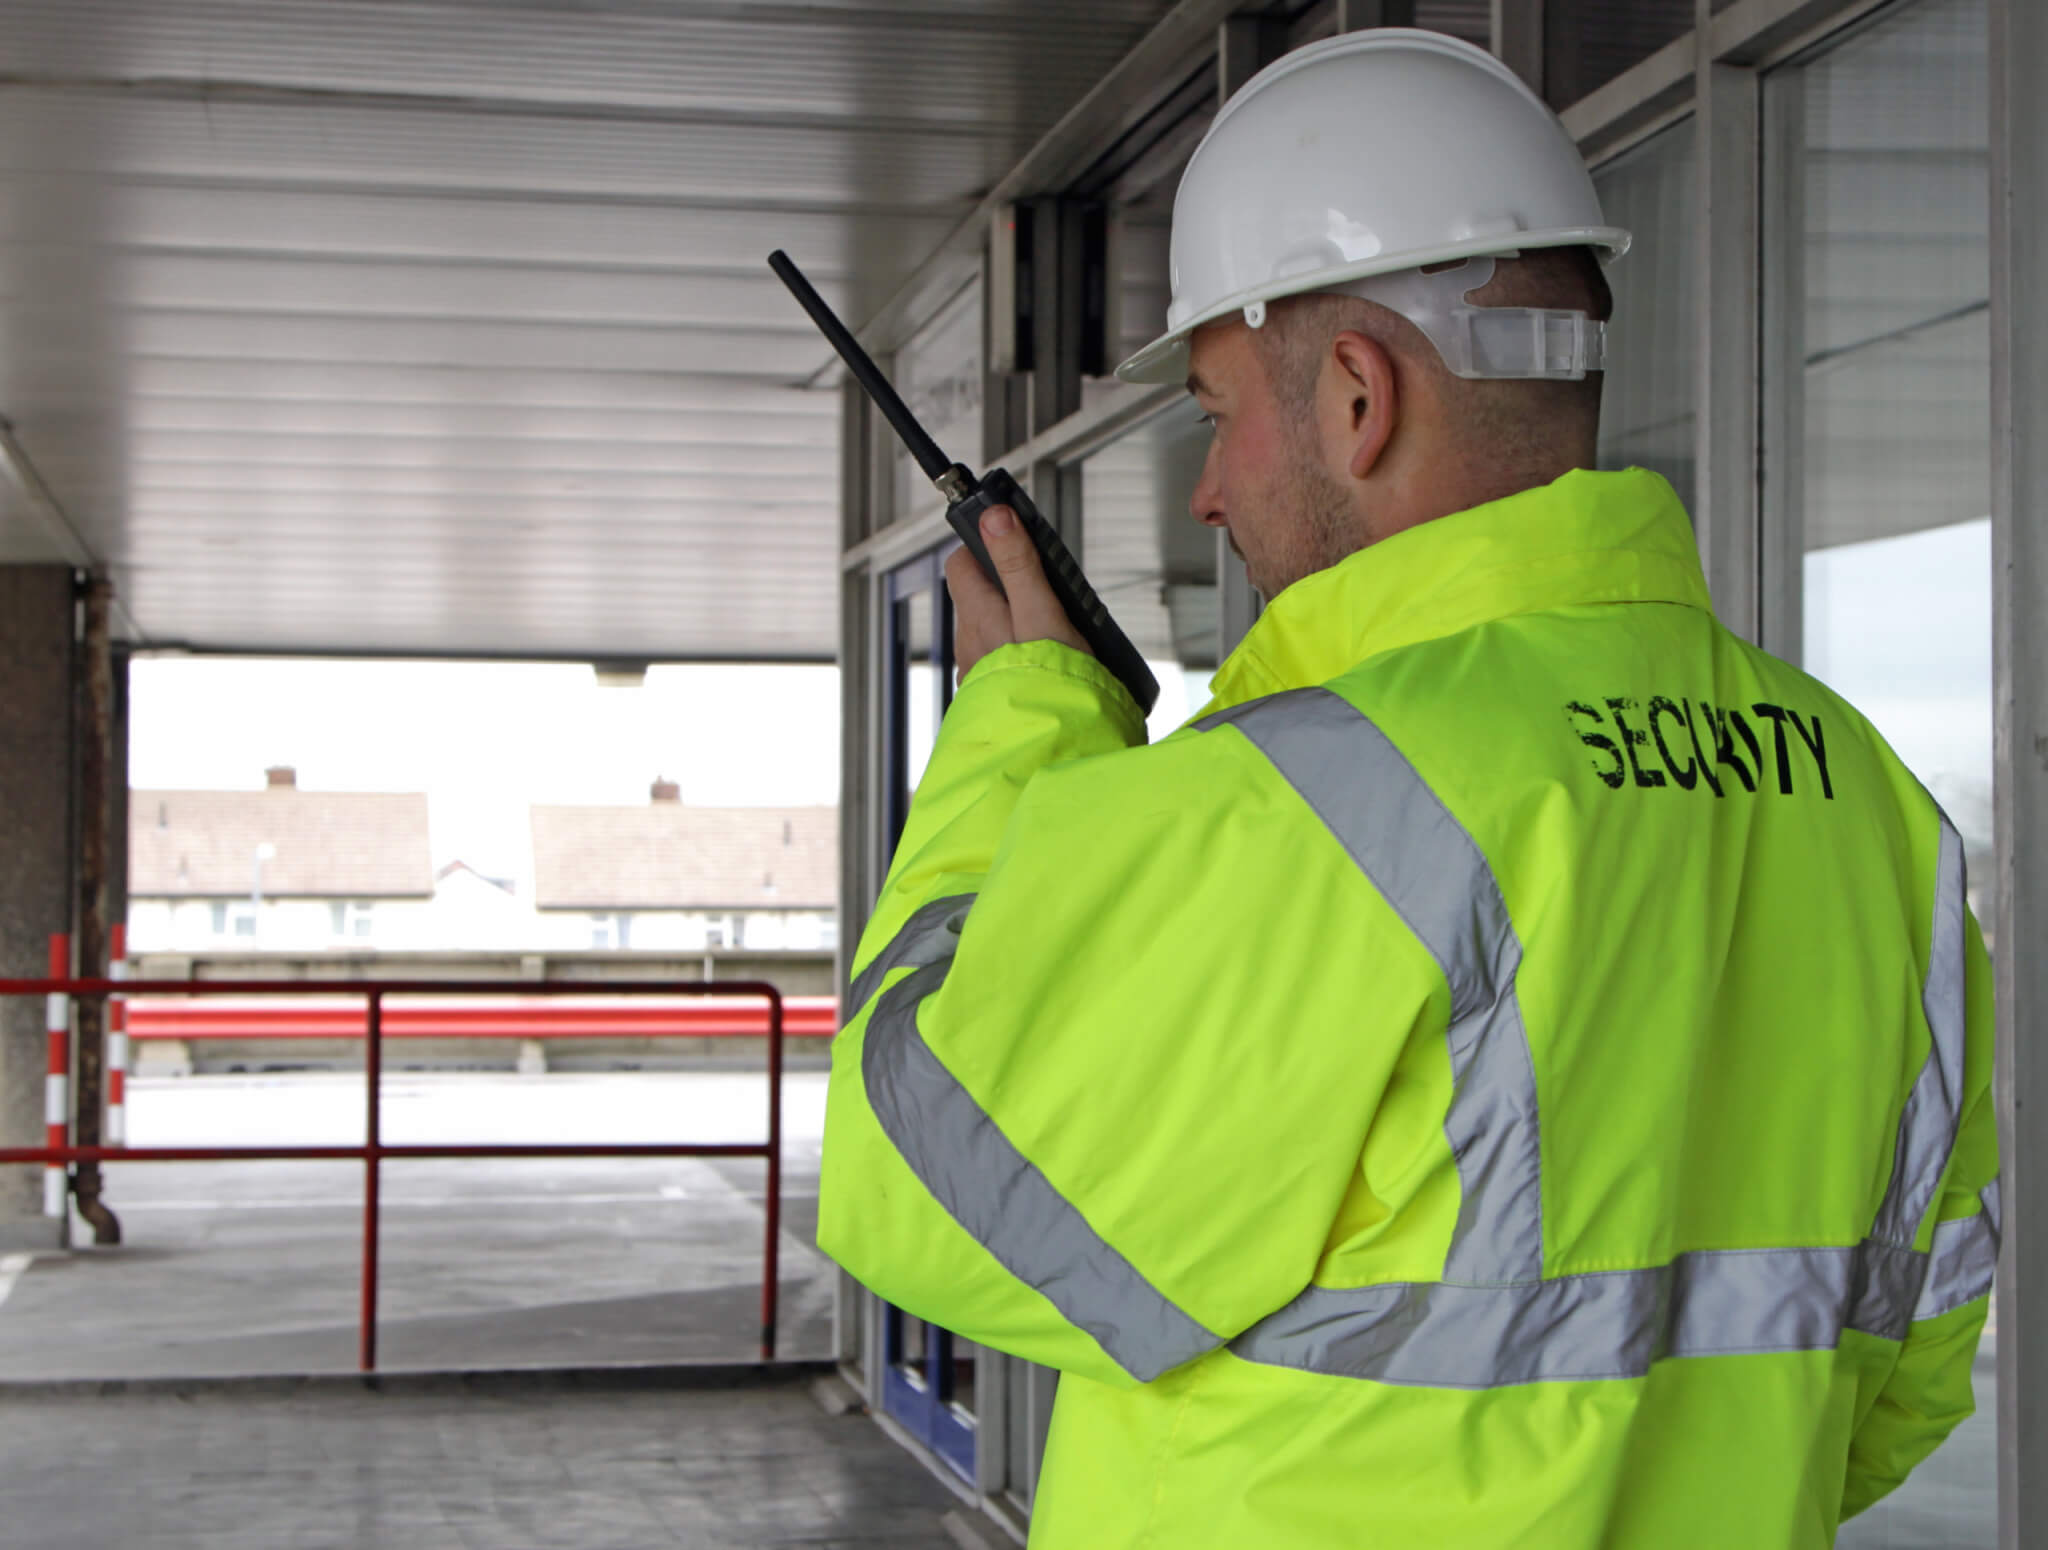 A security man reporting to HQ on a walkie talkie after checking the security of a entrance to a office block.